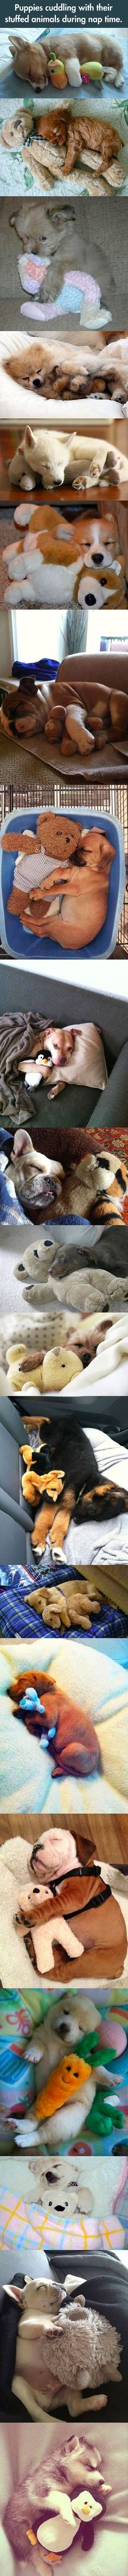 Funny pictures about Best Naps You'll See Today. Oh, and cool pics about Best Naps You'll See Today. Also, Best Naps You'll See Today photos. Cute Baby Animals, Animals And Pets, Funny Animals, Sleepy Animals, Cute Puppies, Cute Dogs, Dogs And Puppies, Doggies, Puppies Puppies